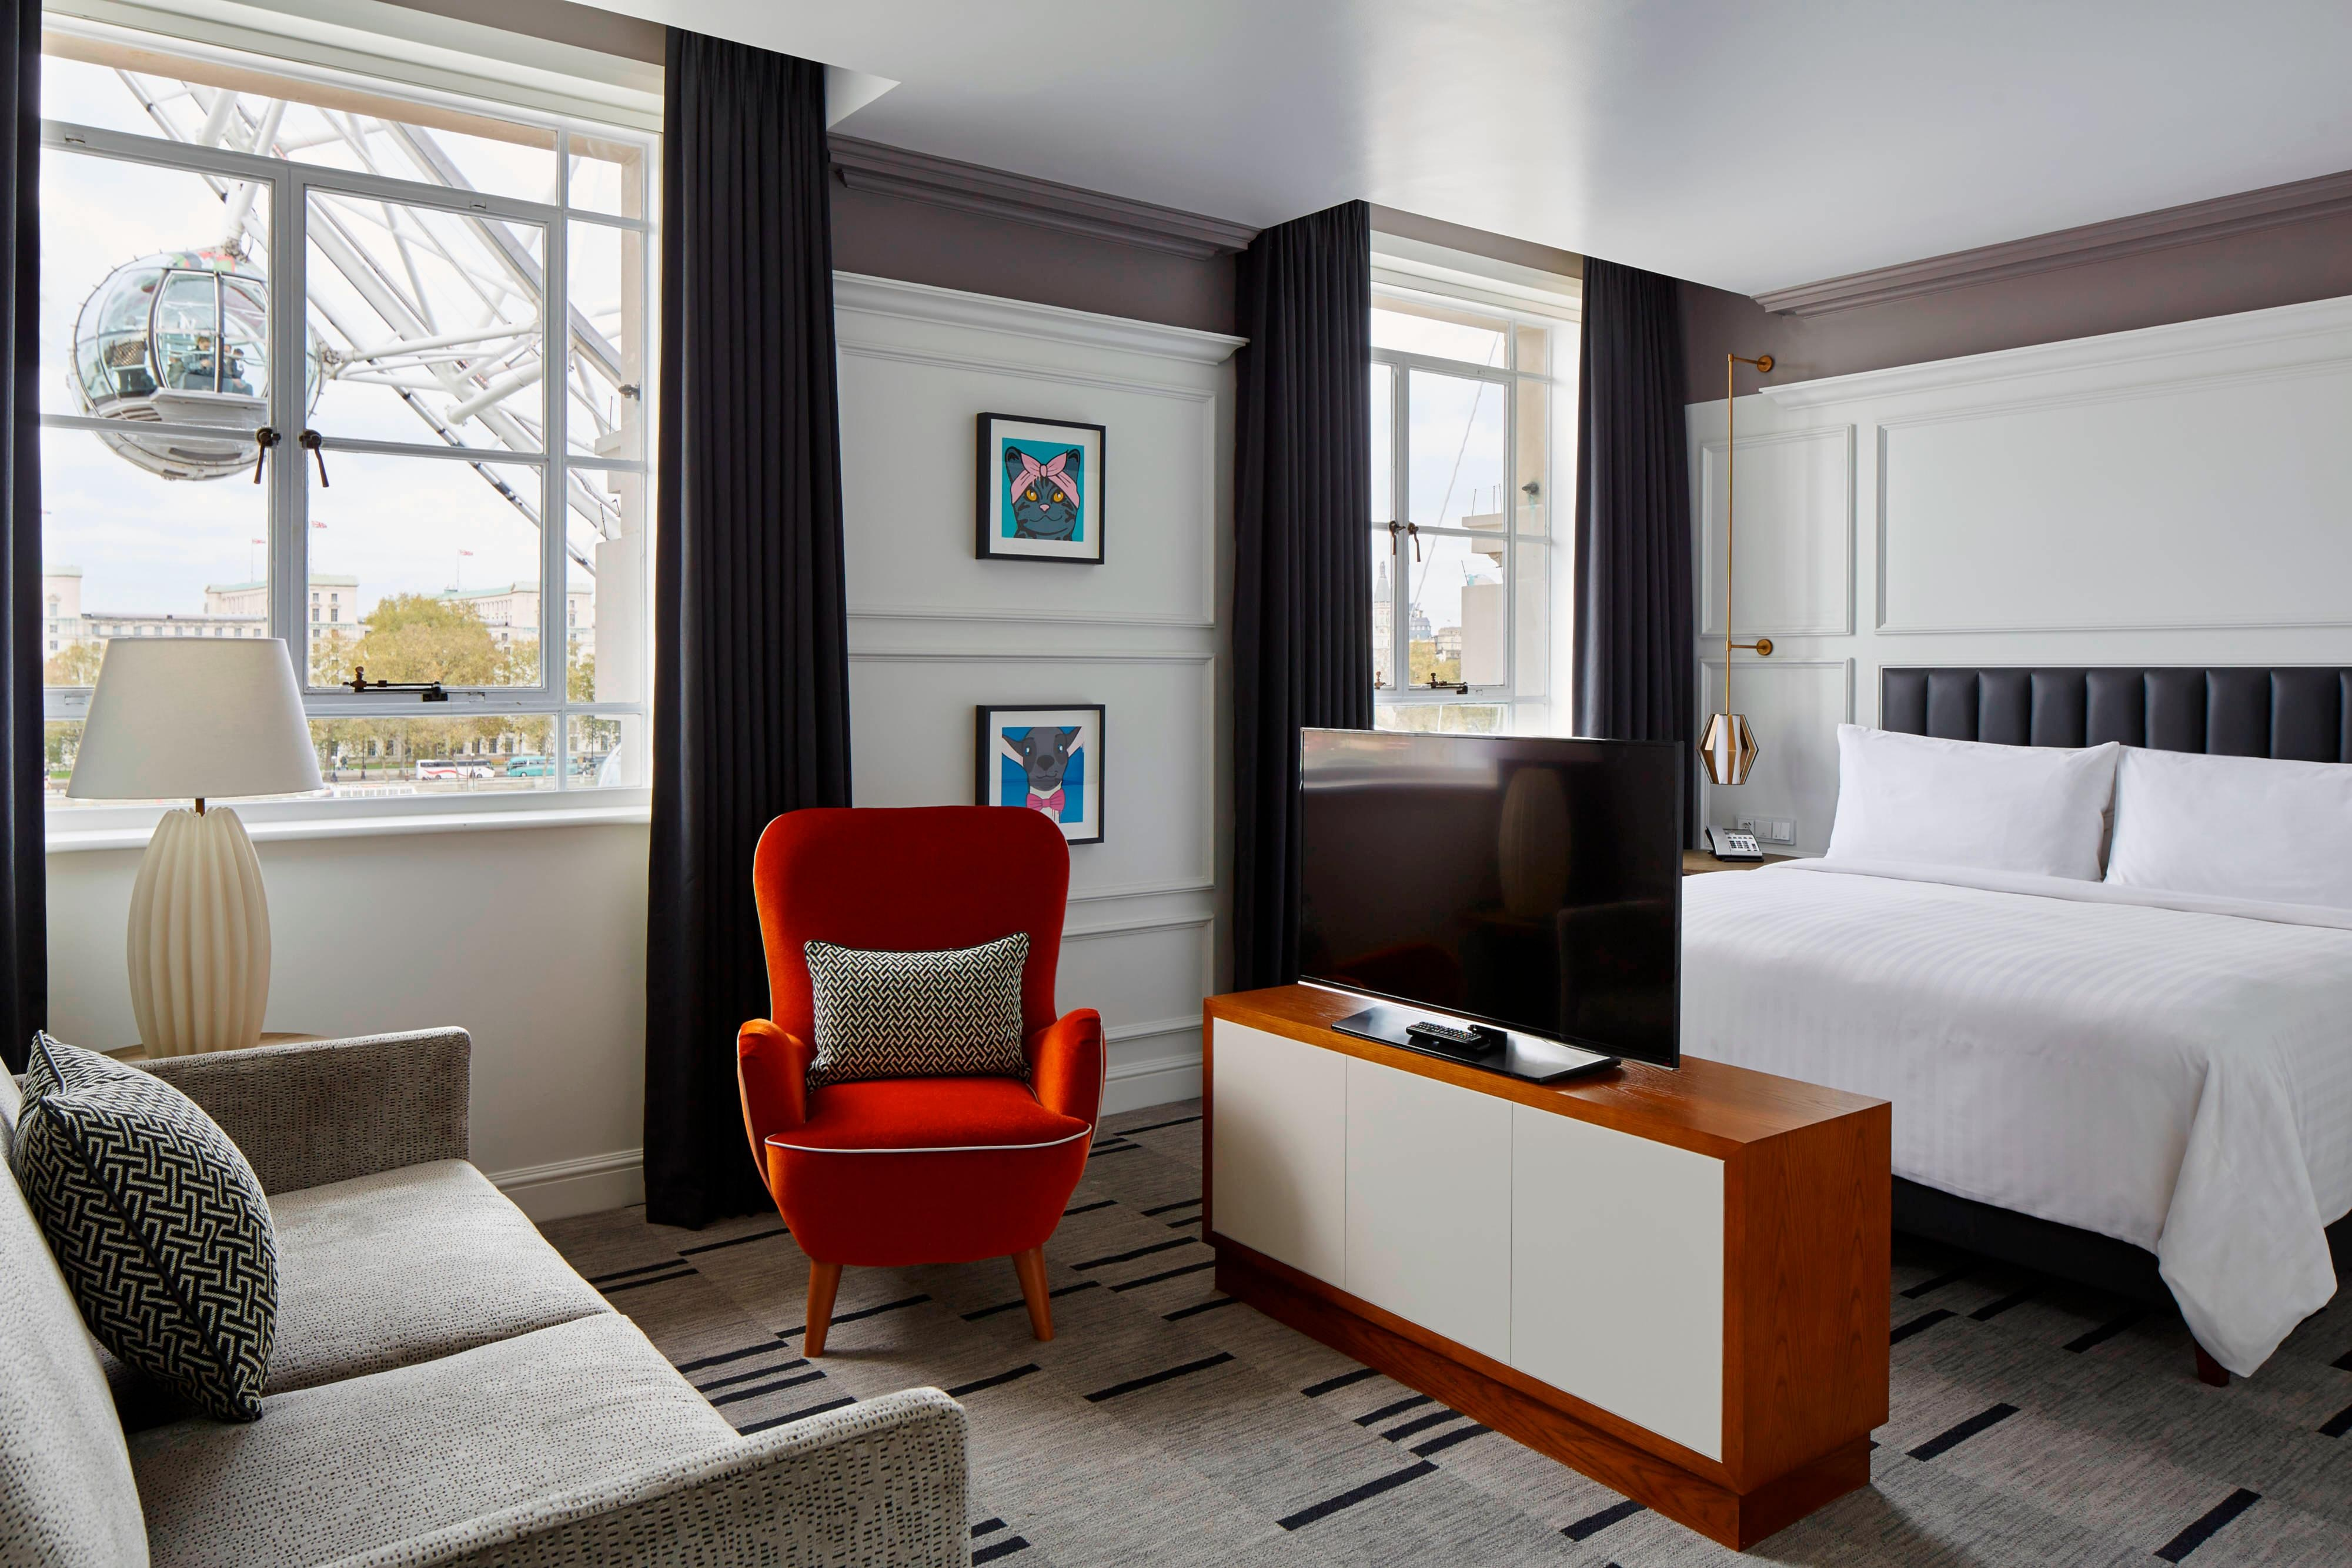 Suite Junior de l'hôtel de Londres